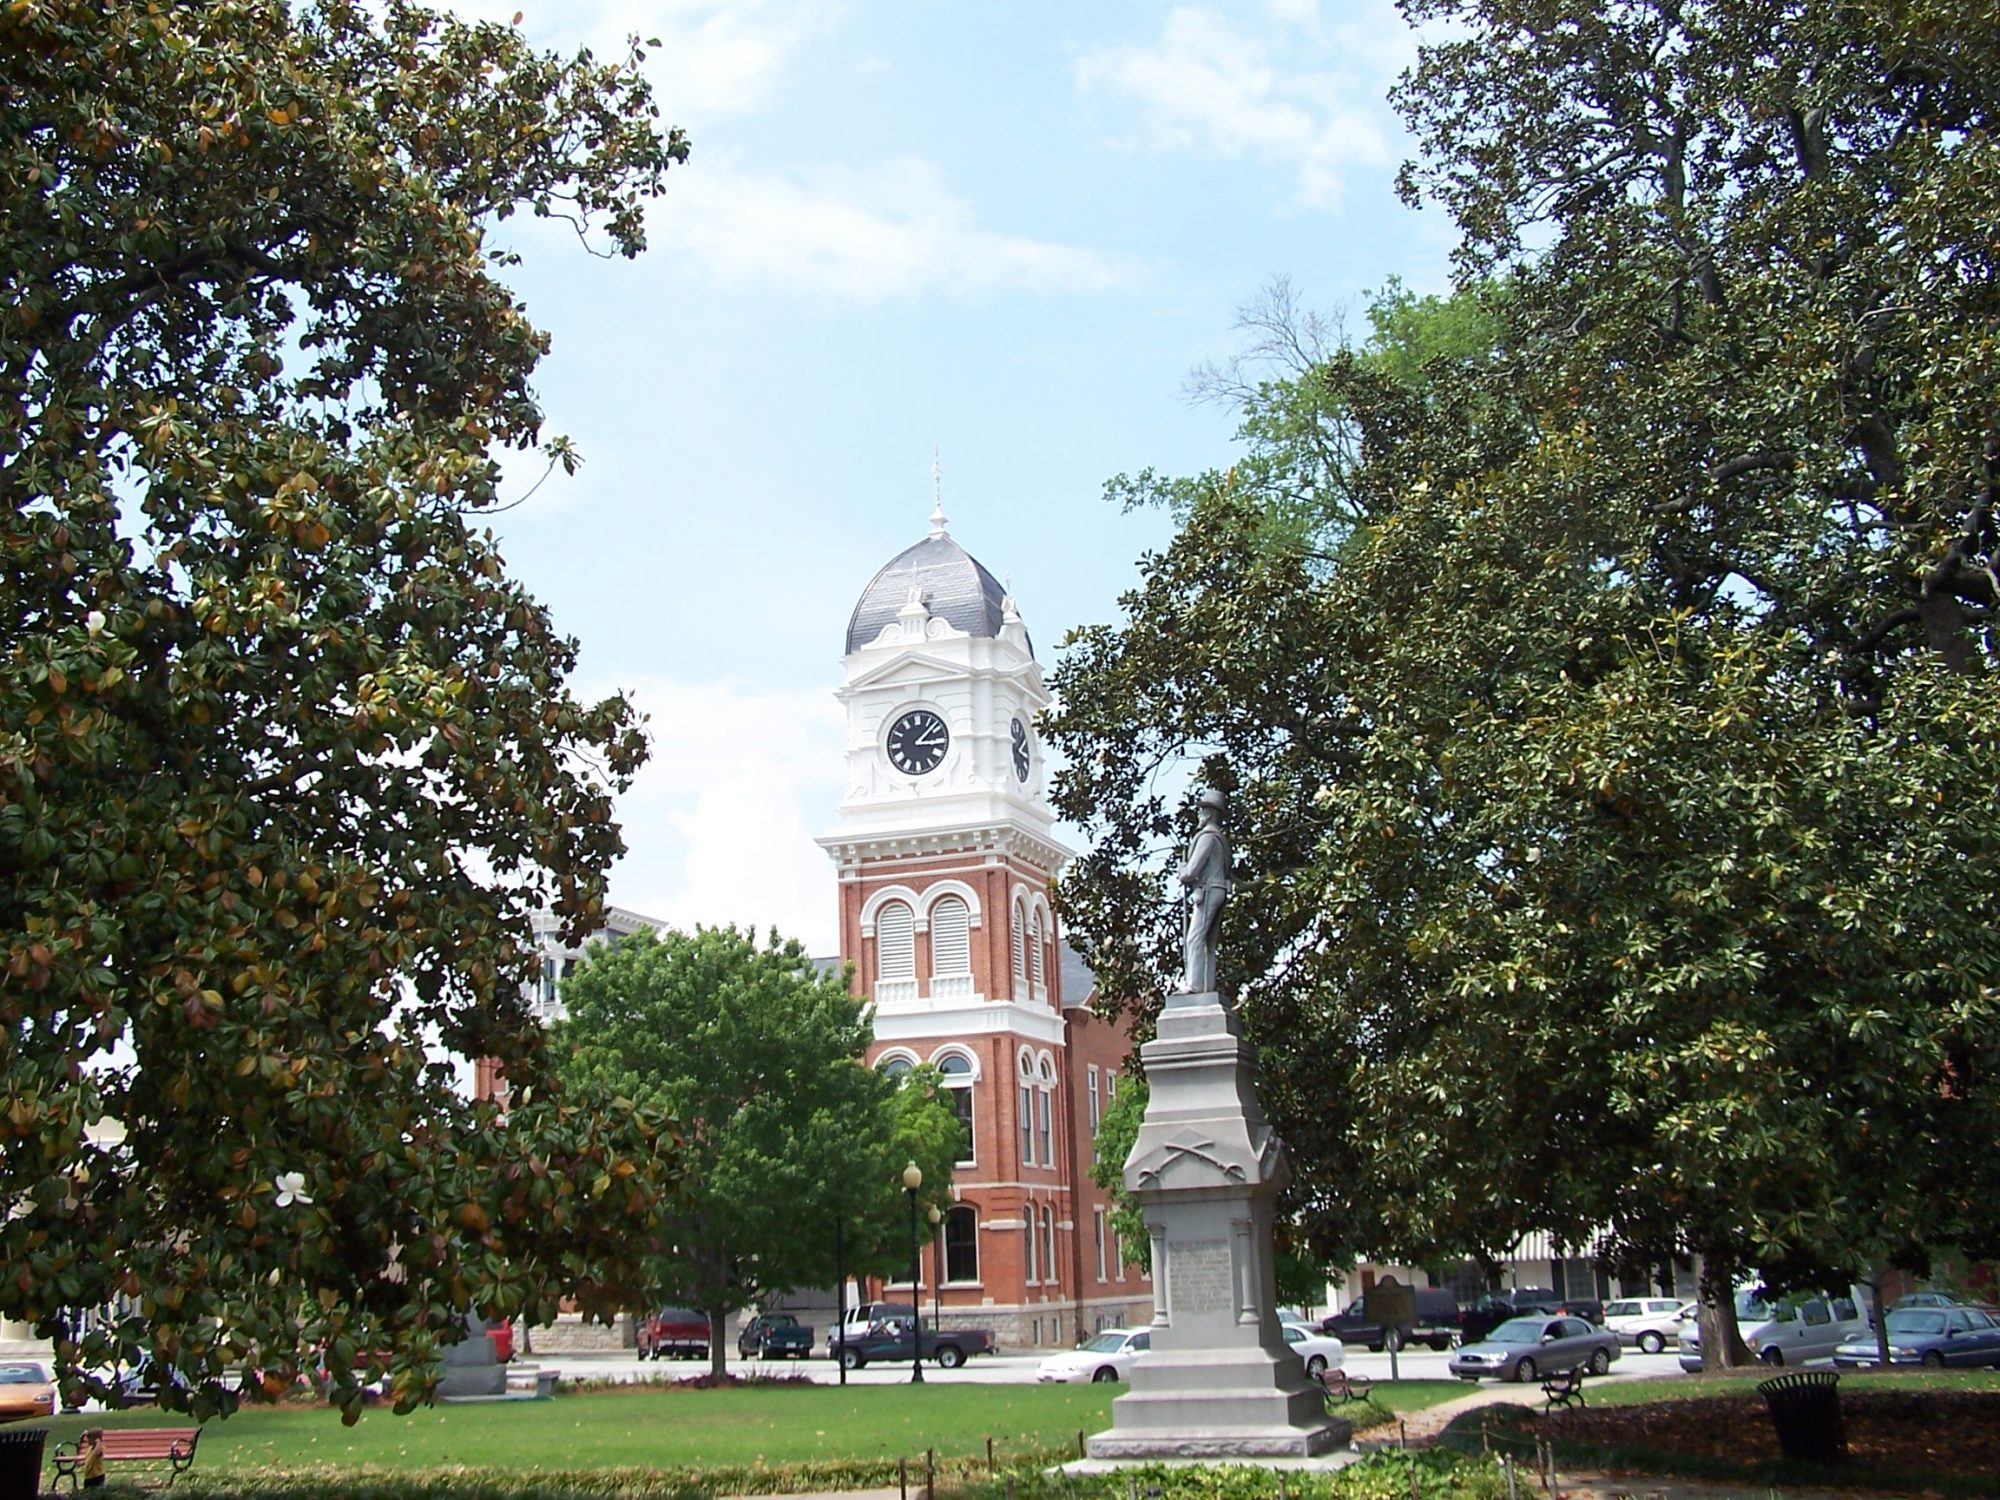 Covington Georgia Statue and Courthouse